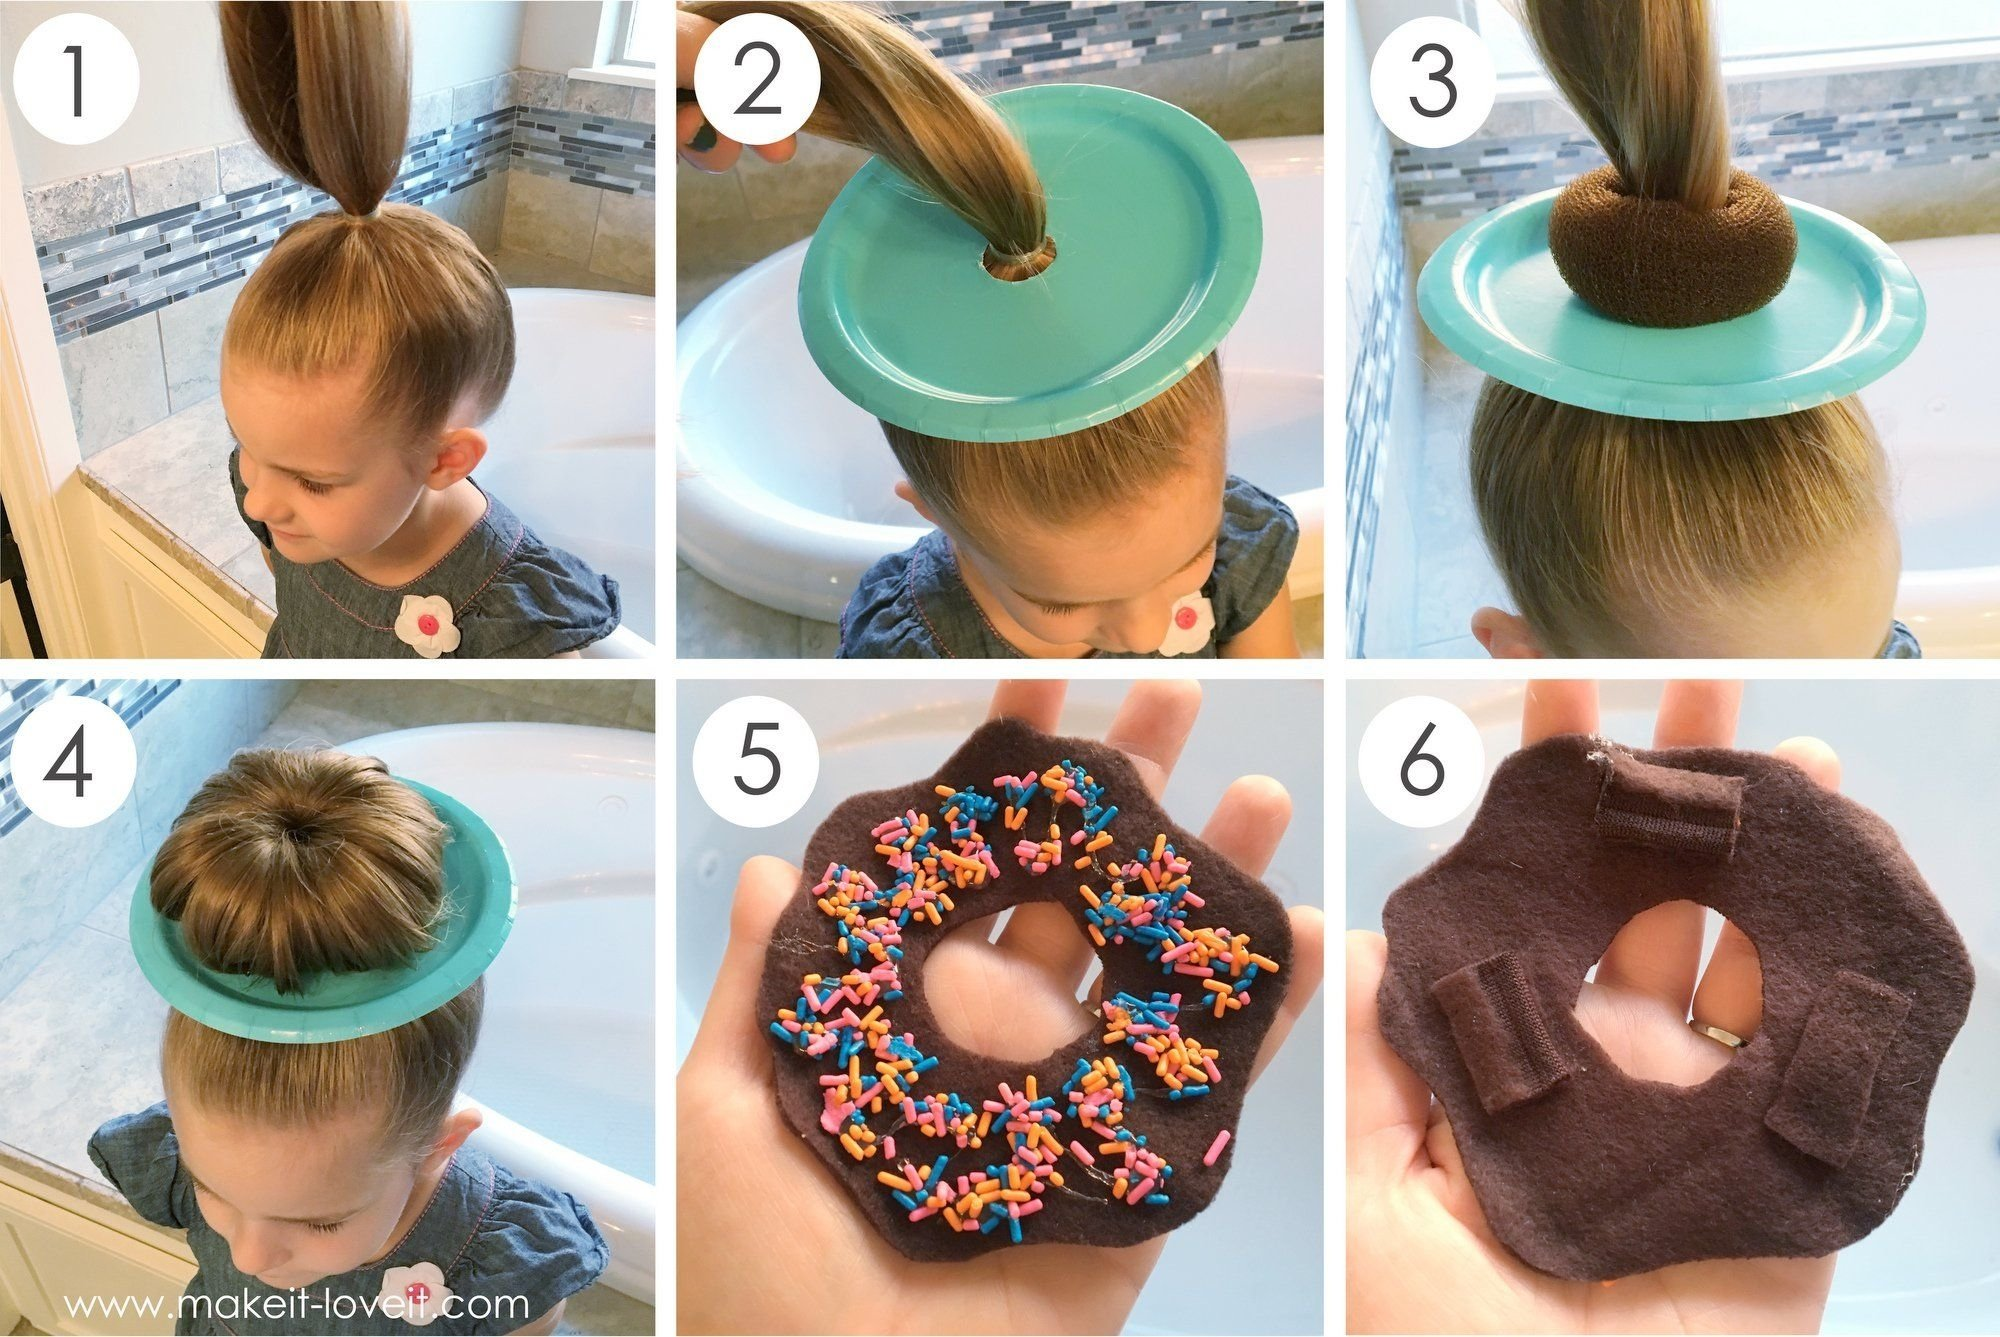 10 Fantastic Ideas Crazy Hair Day School 25 clever ideas for wacky hair day at school including 20 2021